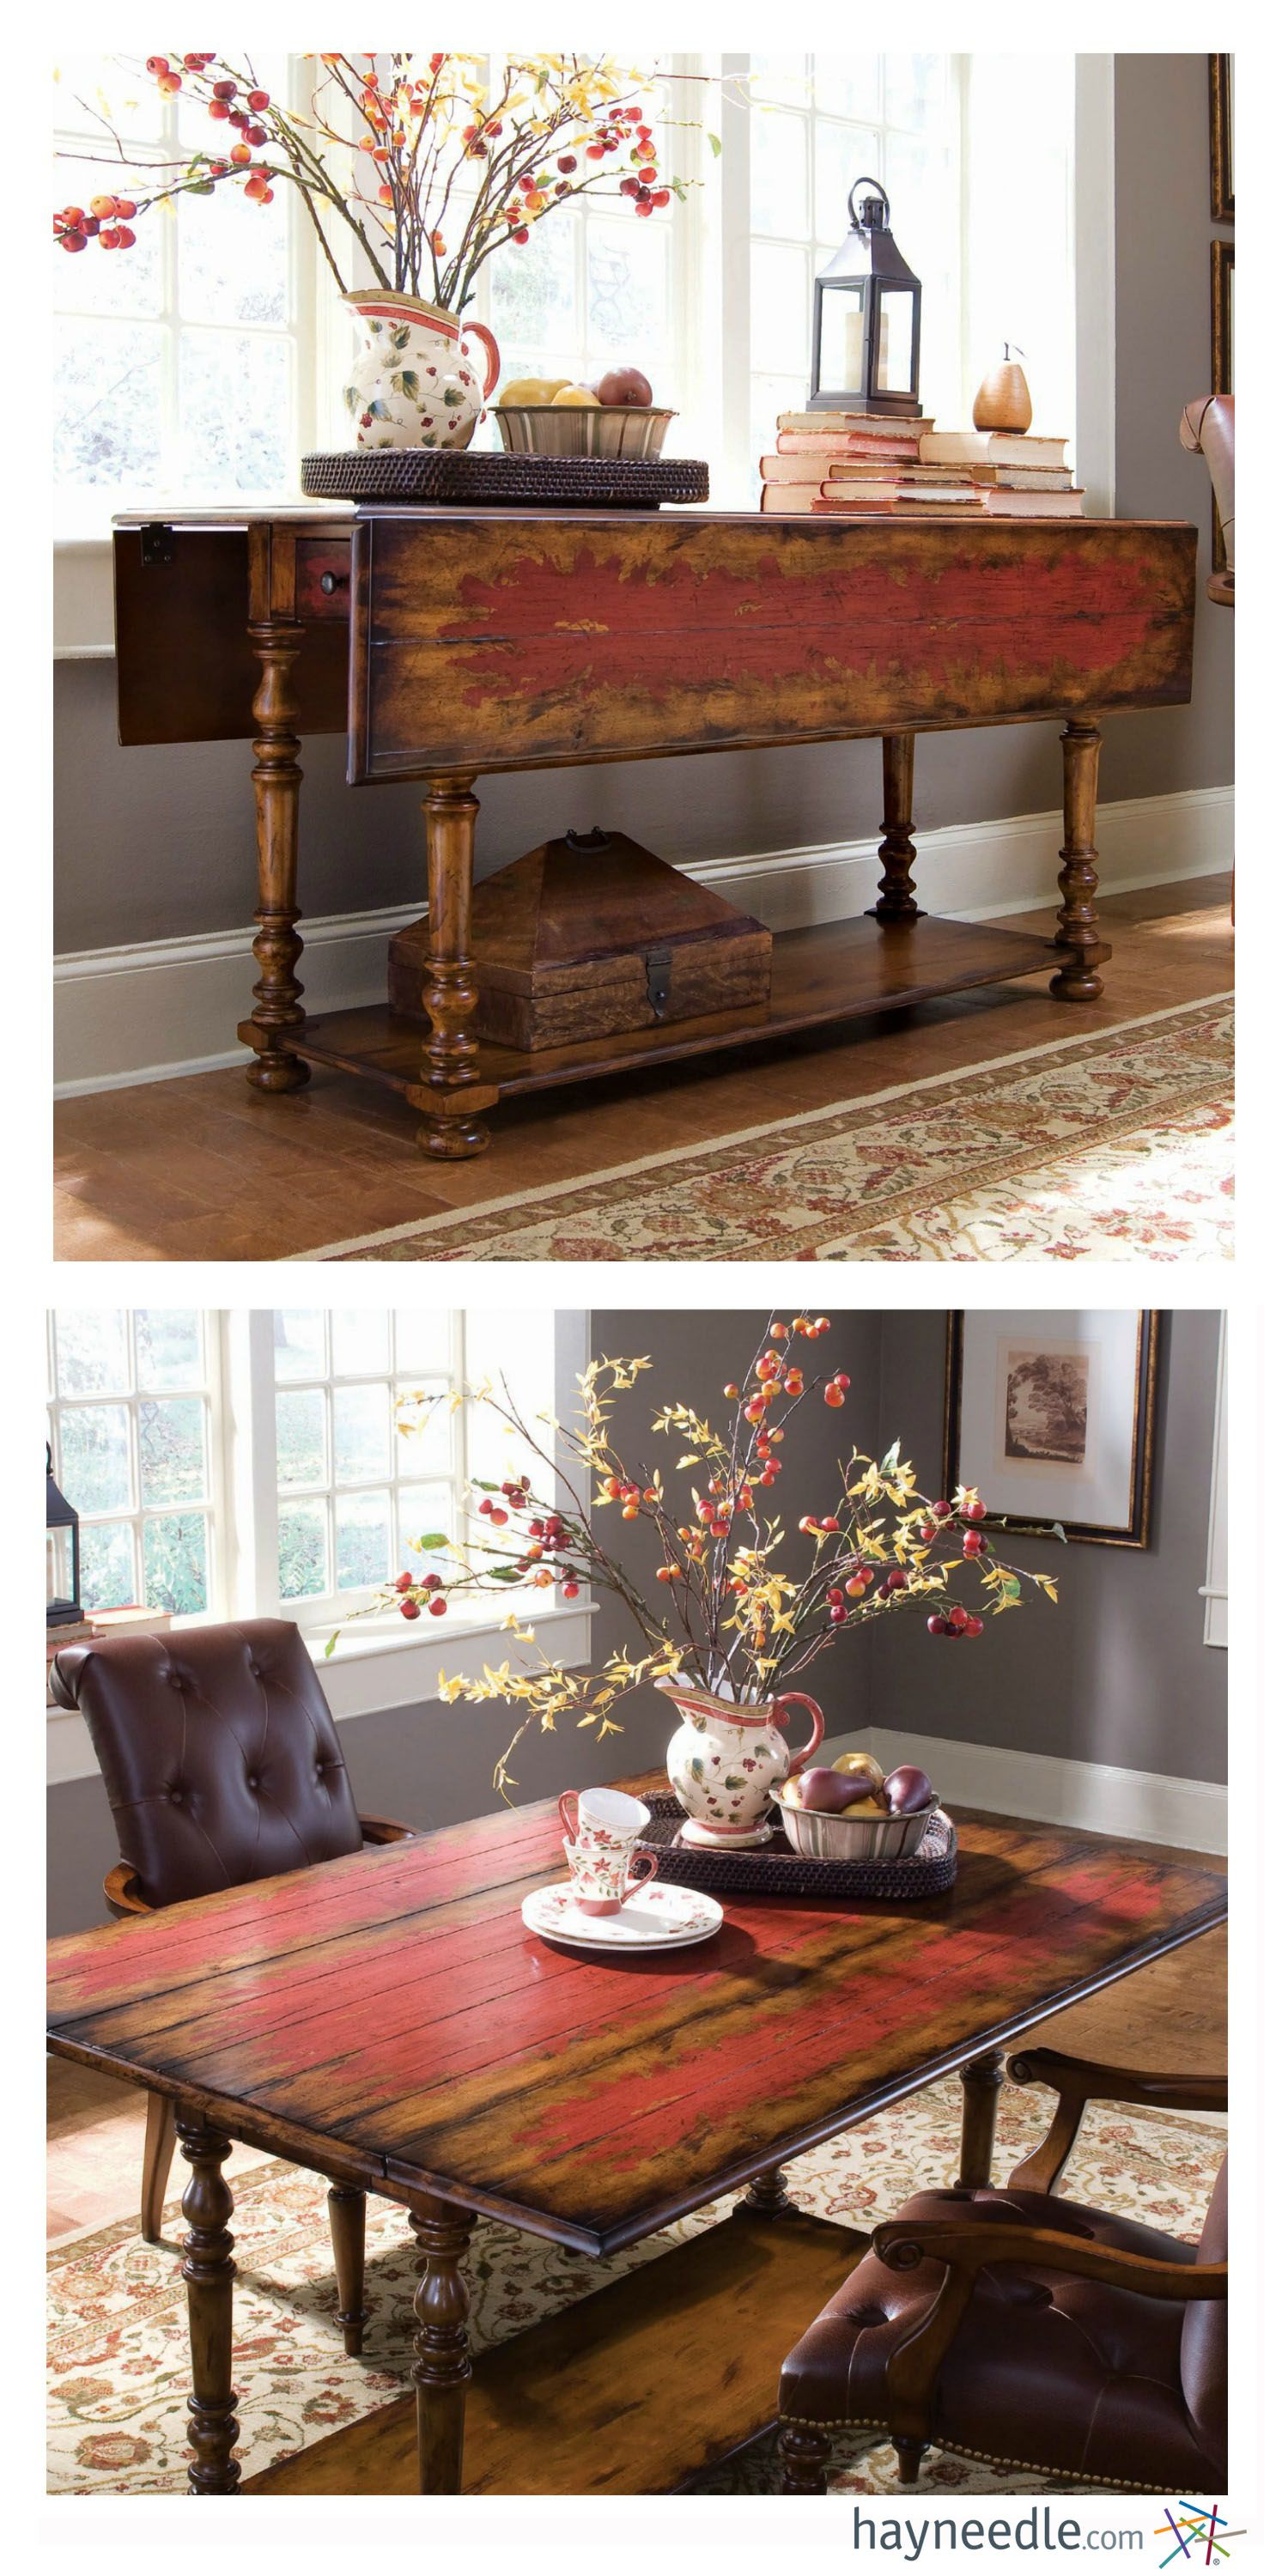 What A Complete Charmer The Red Splash Drop Leaf Accent Table Is Like Perfect Bar TablesDining Room